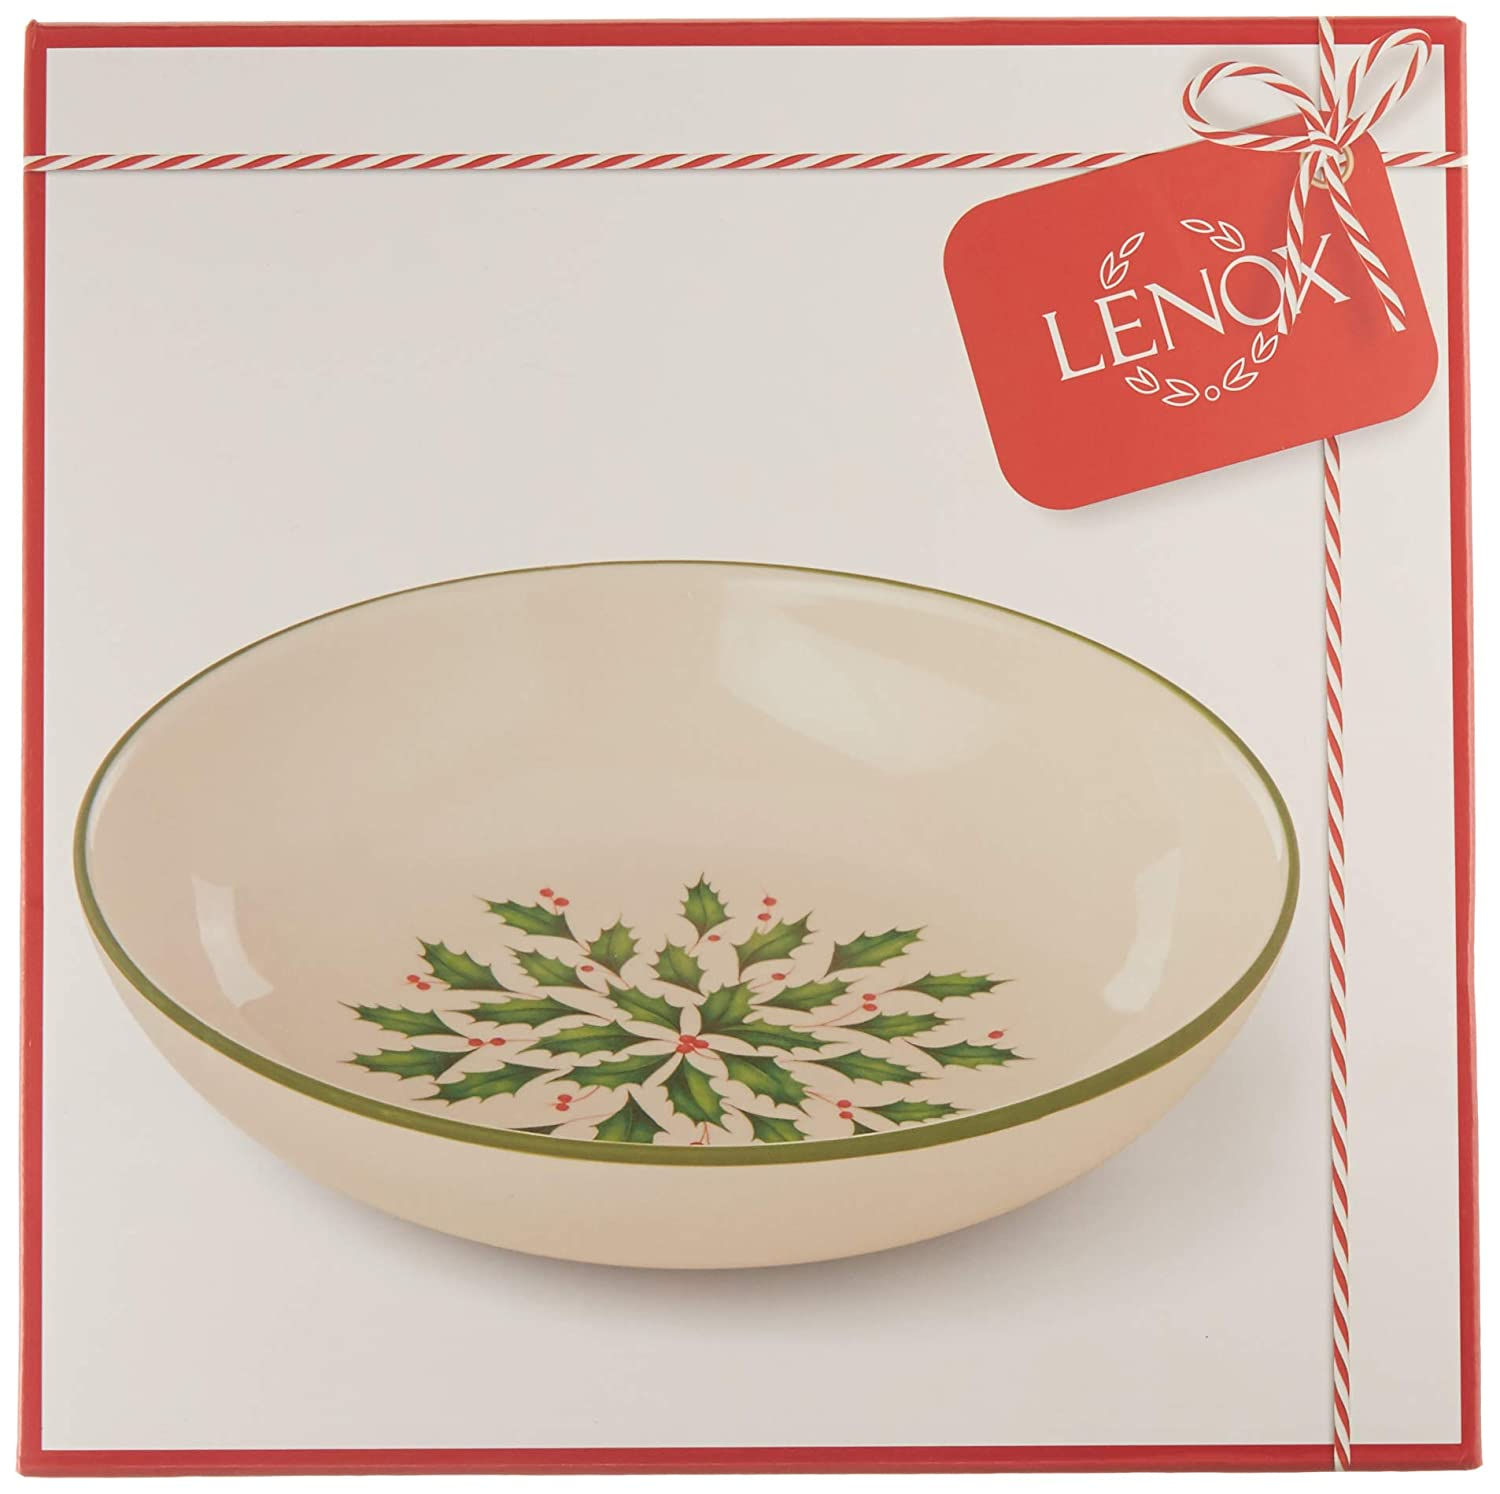 Lenox 879295 Holiday Accent Plate Multicolor